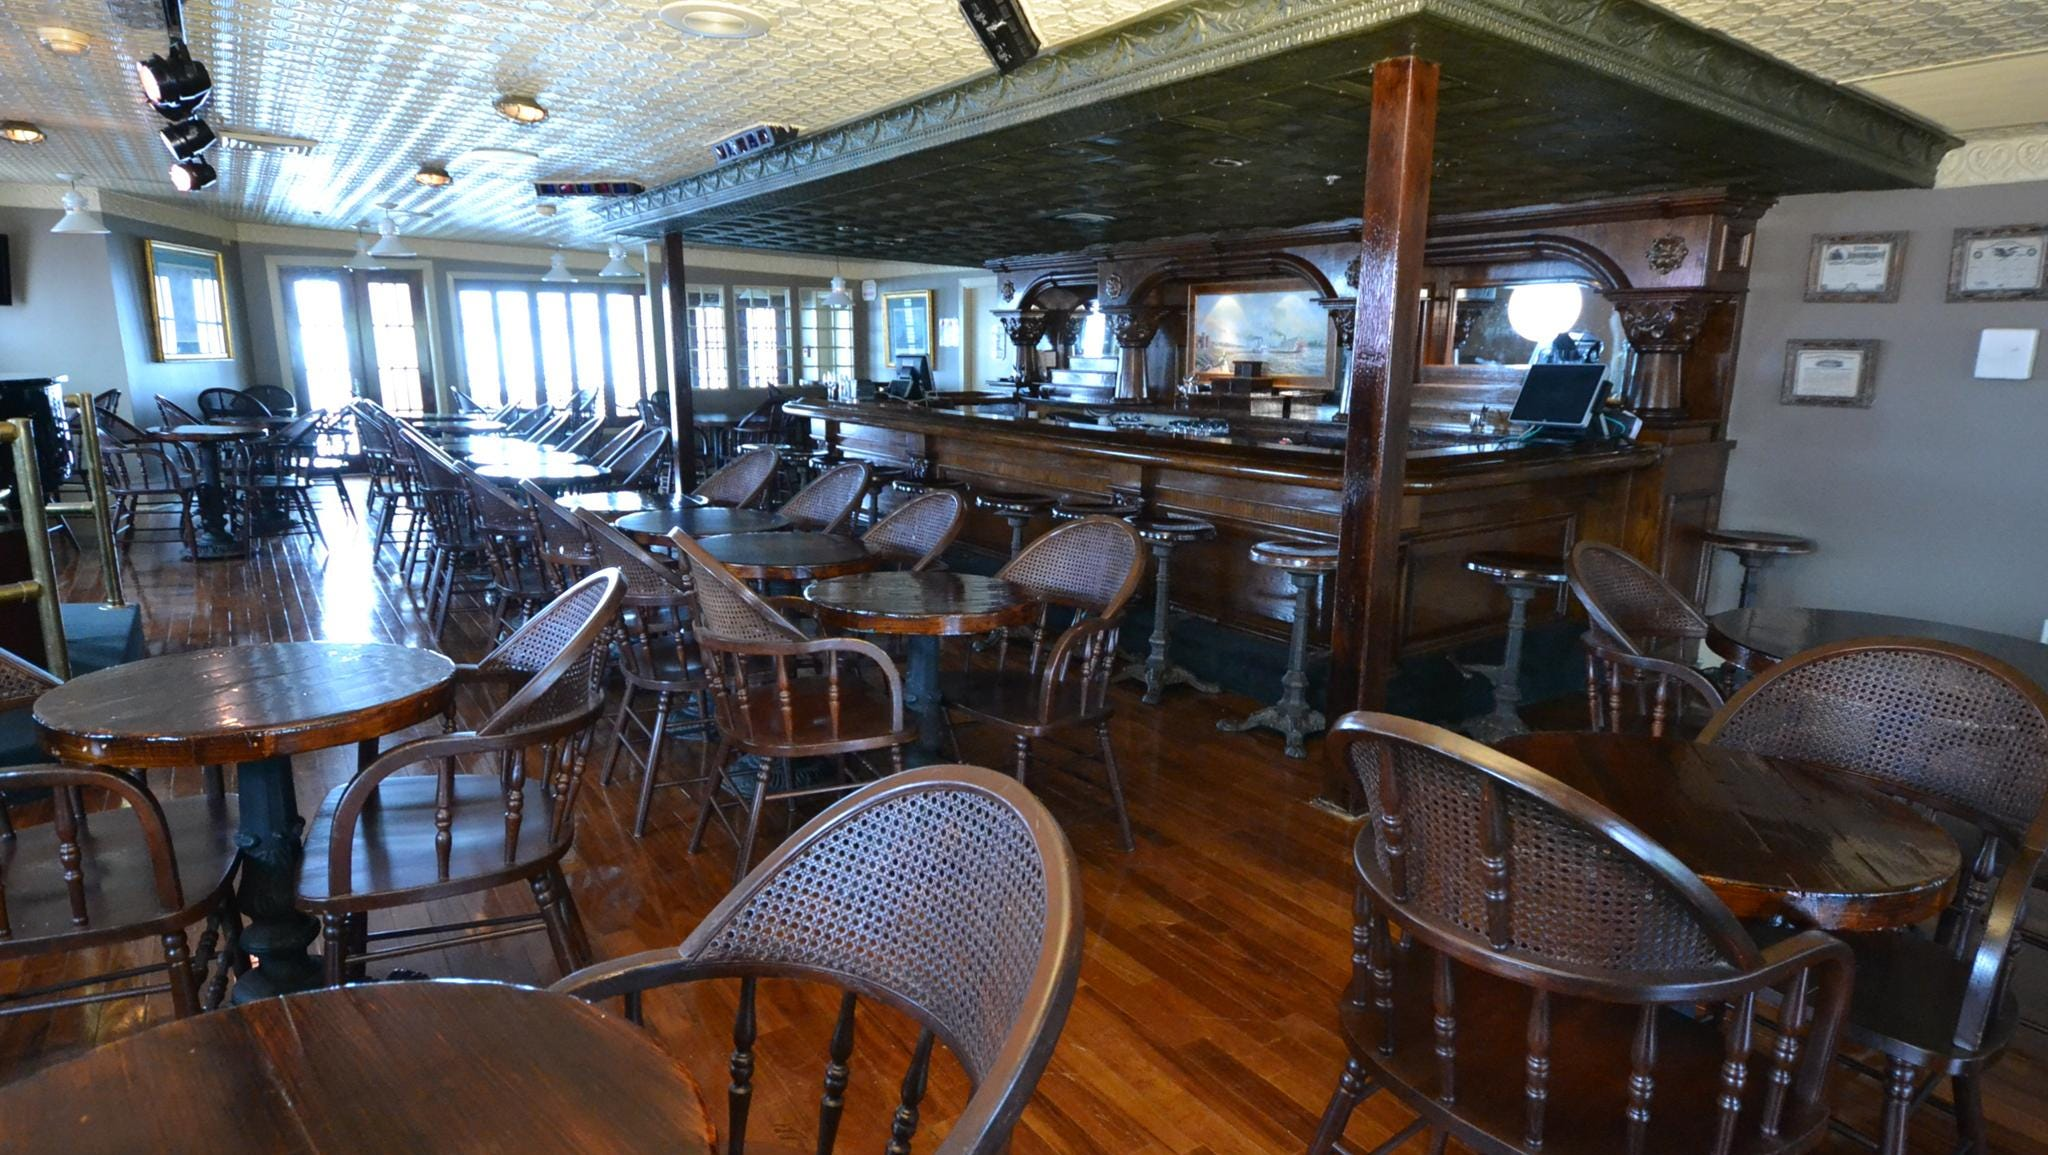 Located at the back of the American Queen, over the engine room, is the Engine Room Bar.